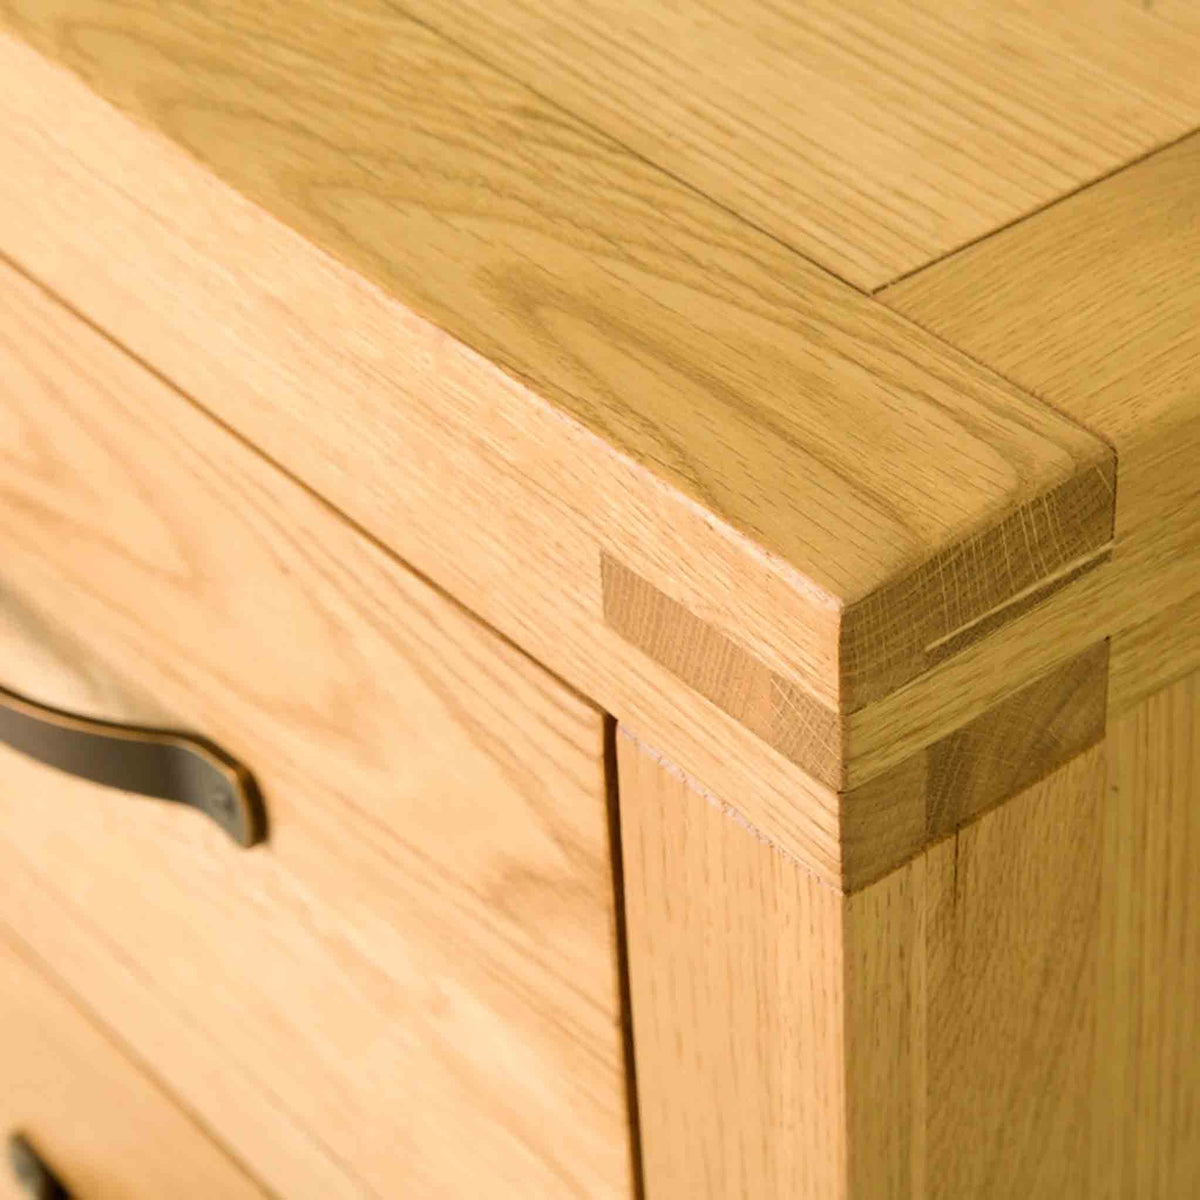 Abbey Waxed Oak Tallboy Chest